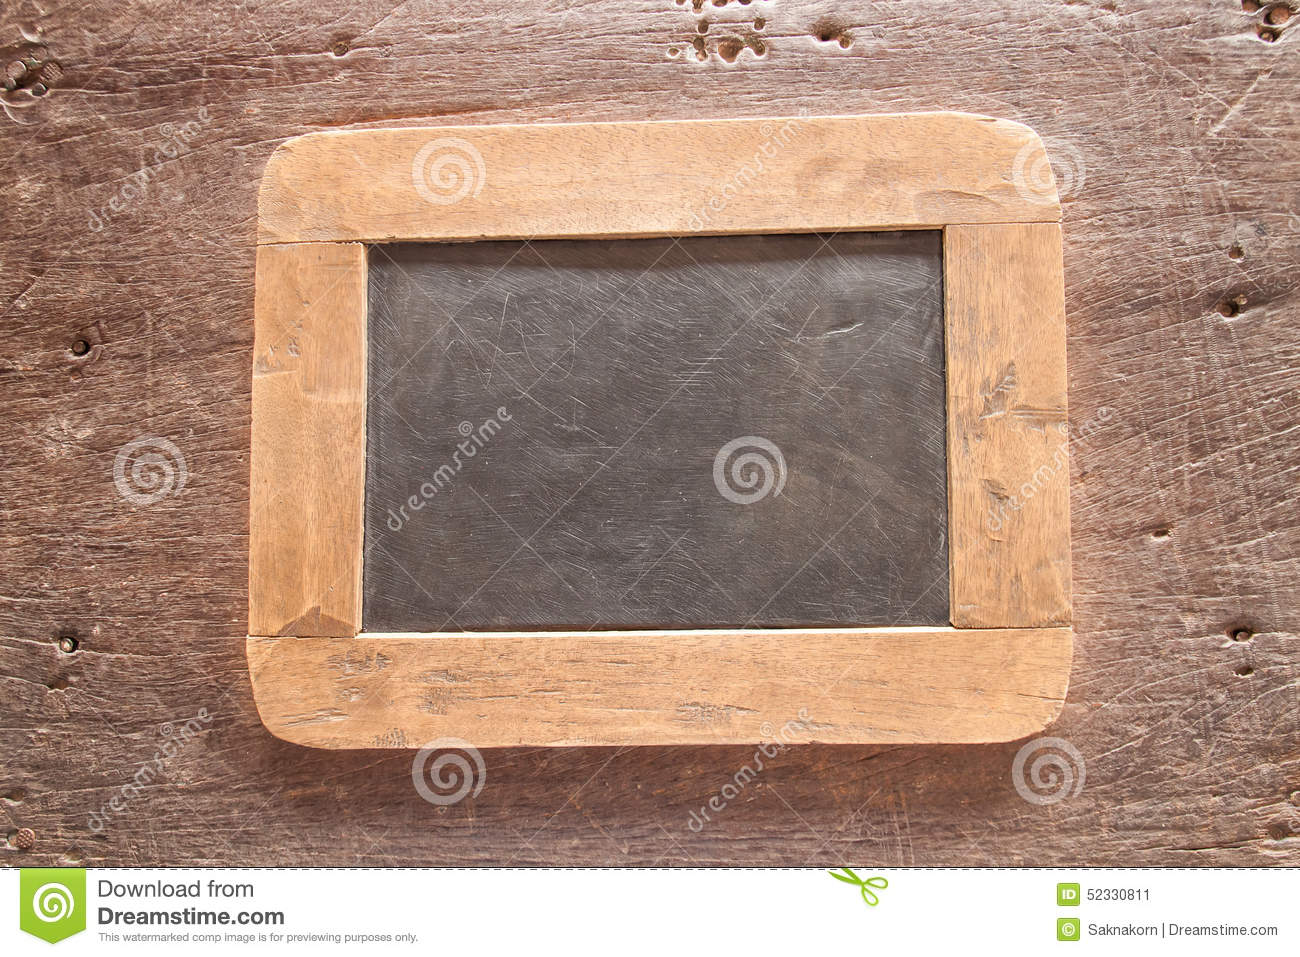 royalty free stock photo download wood framed chalkboard - Wood Framed Chalkboard